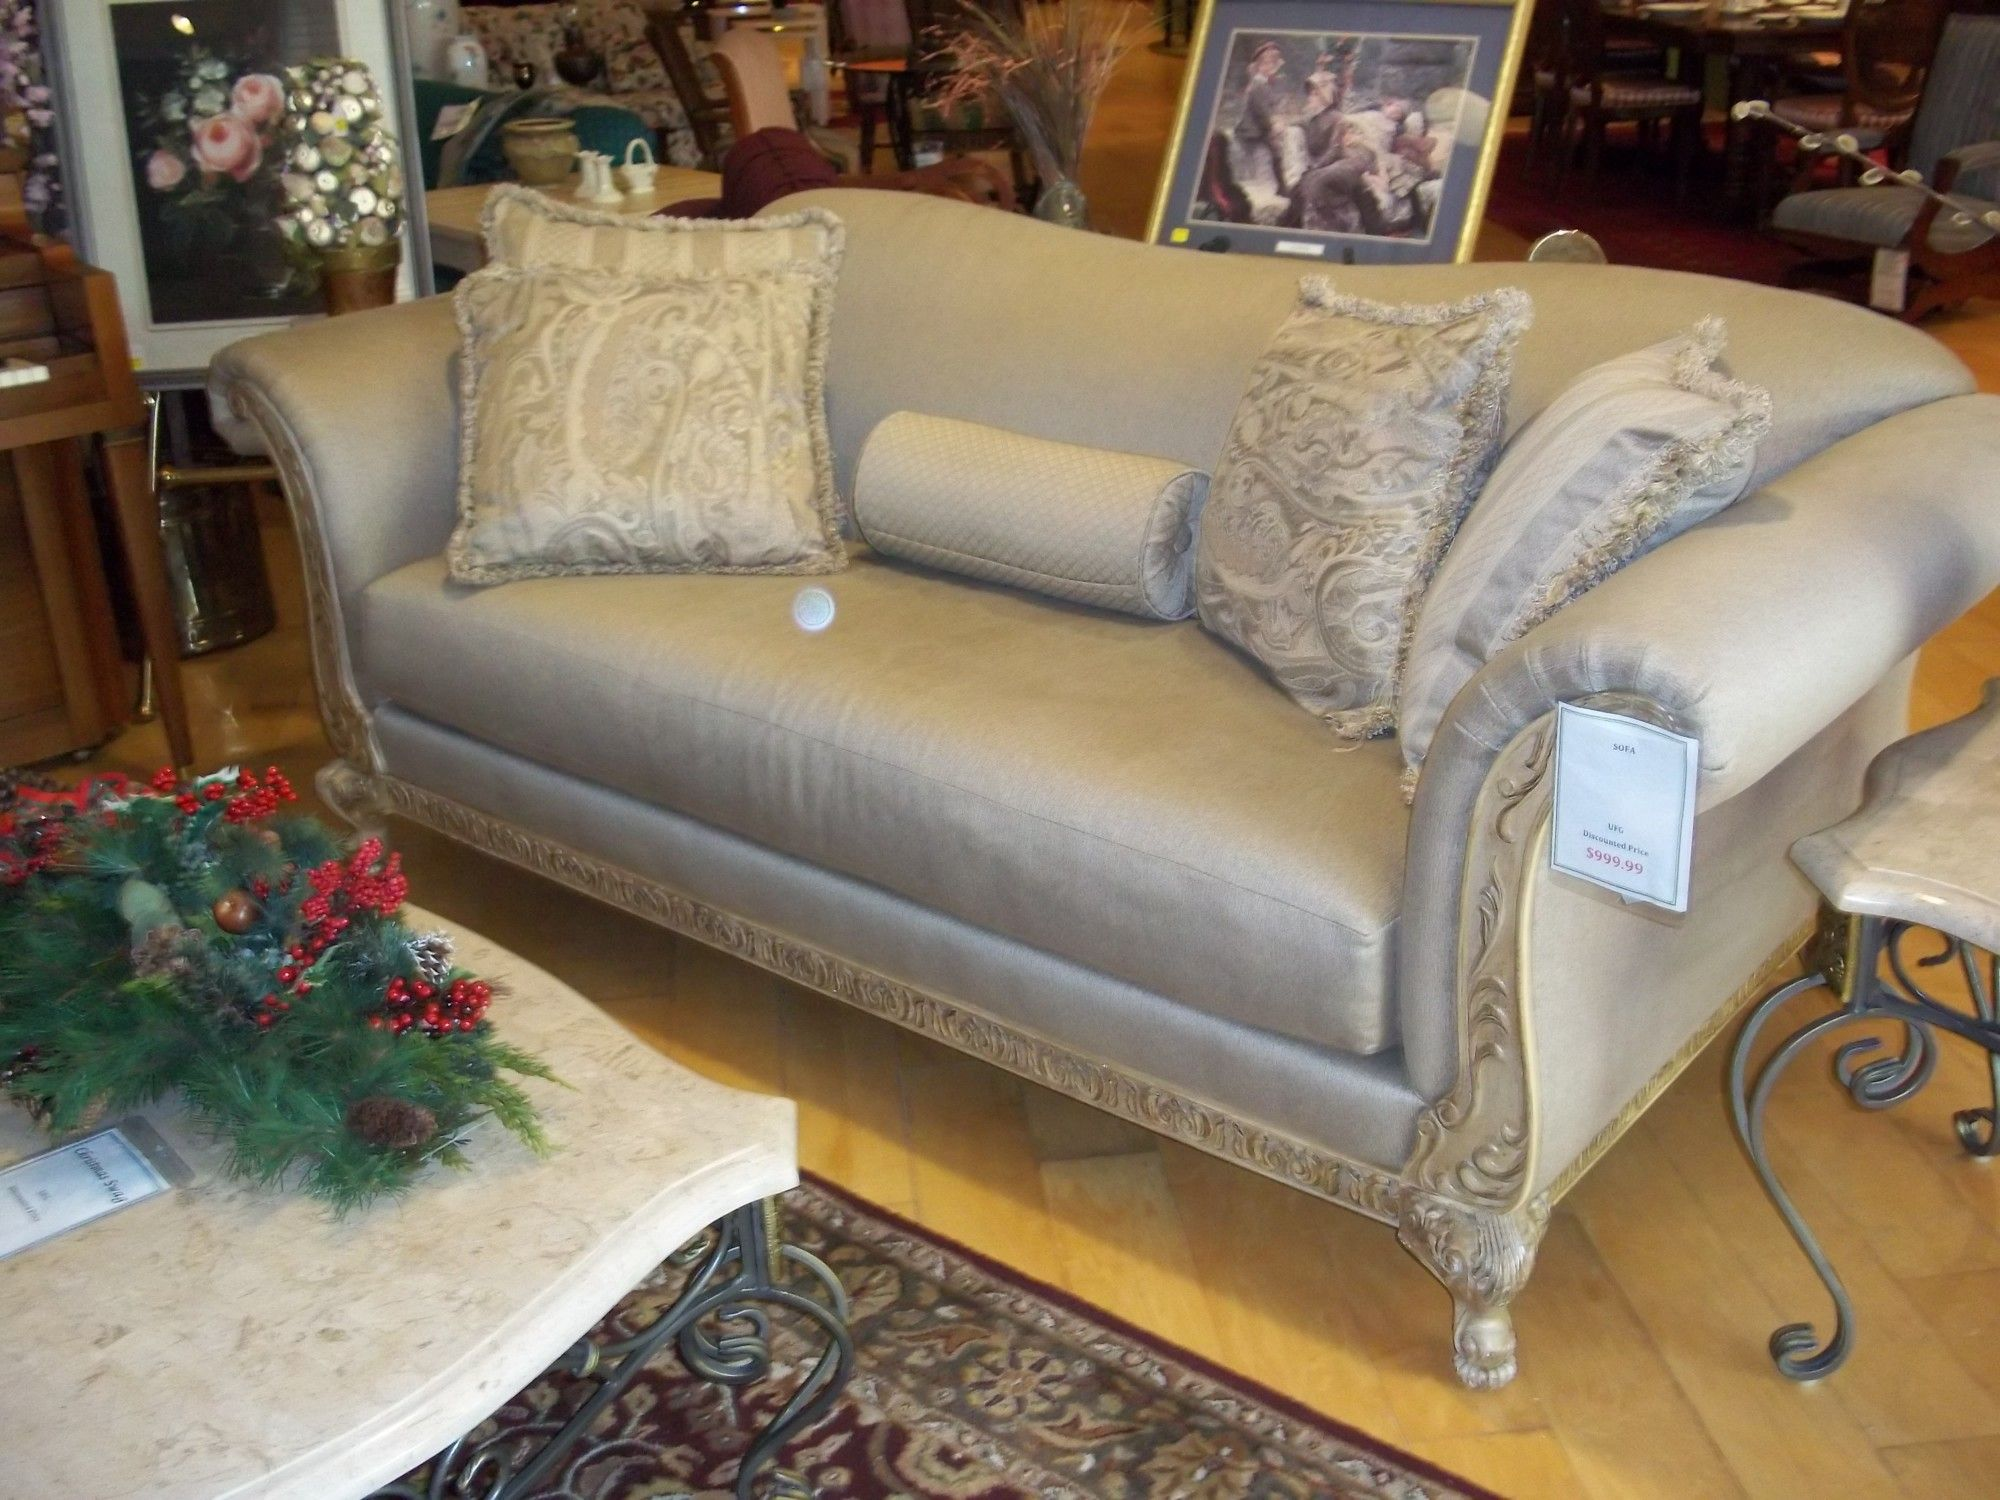 Schnadig Sofa 9090 Stockton Premium Leather 2 Seater Power Recliner Sofas Living Furniture Dining Bedroom Upholstery